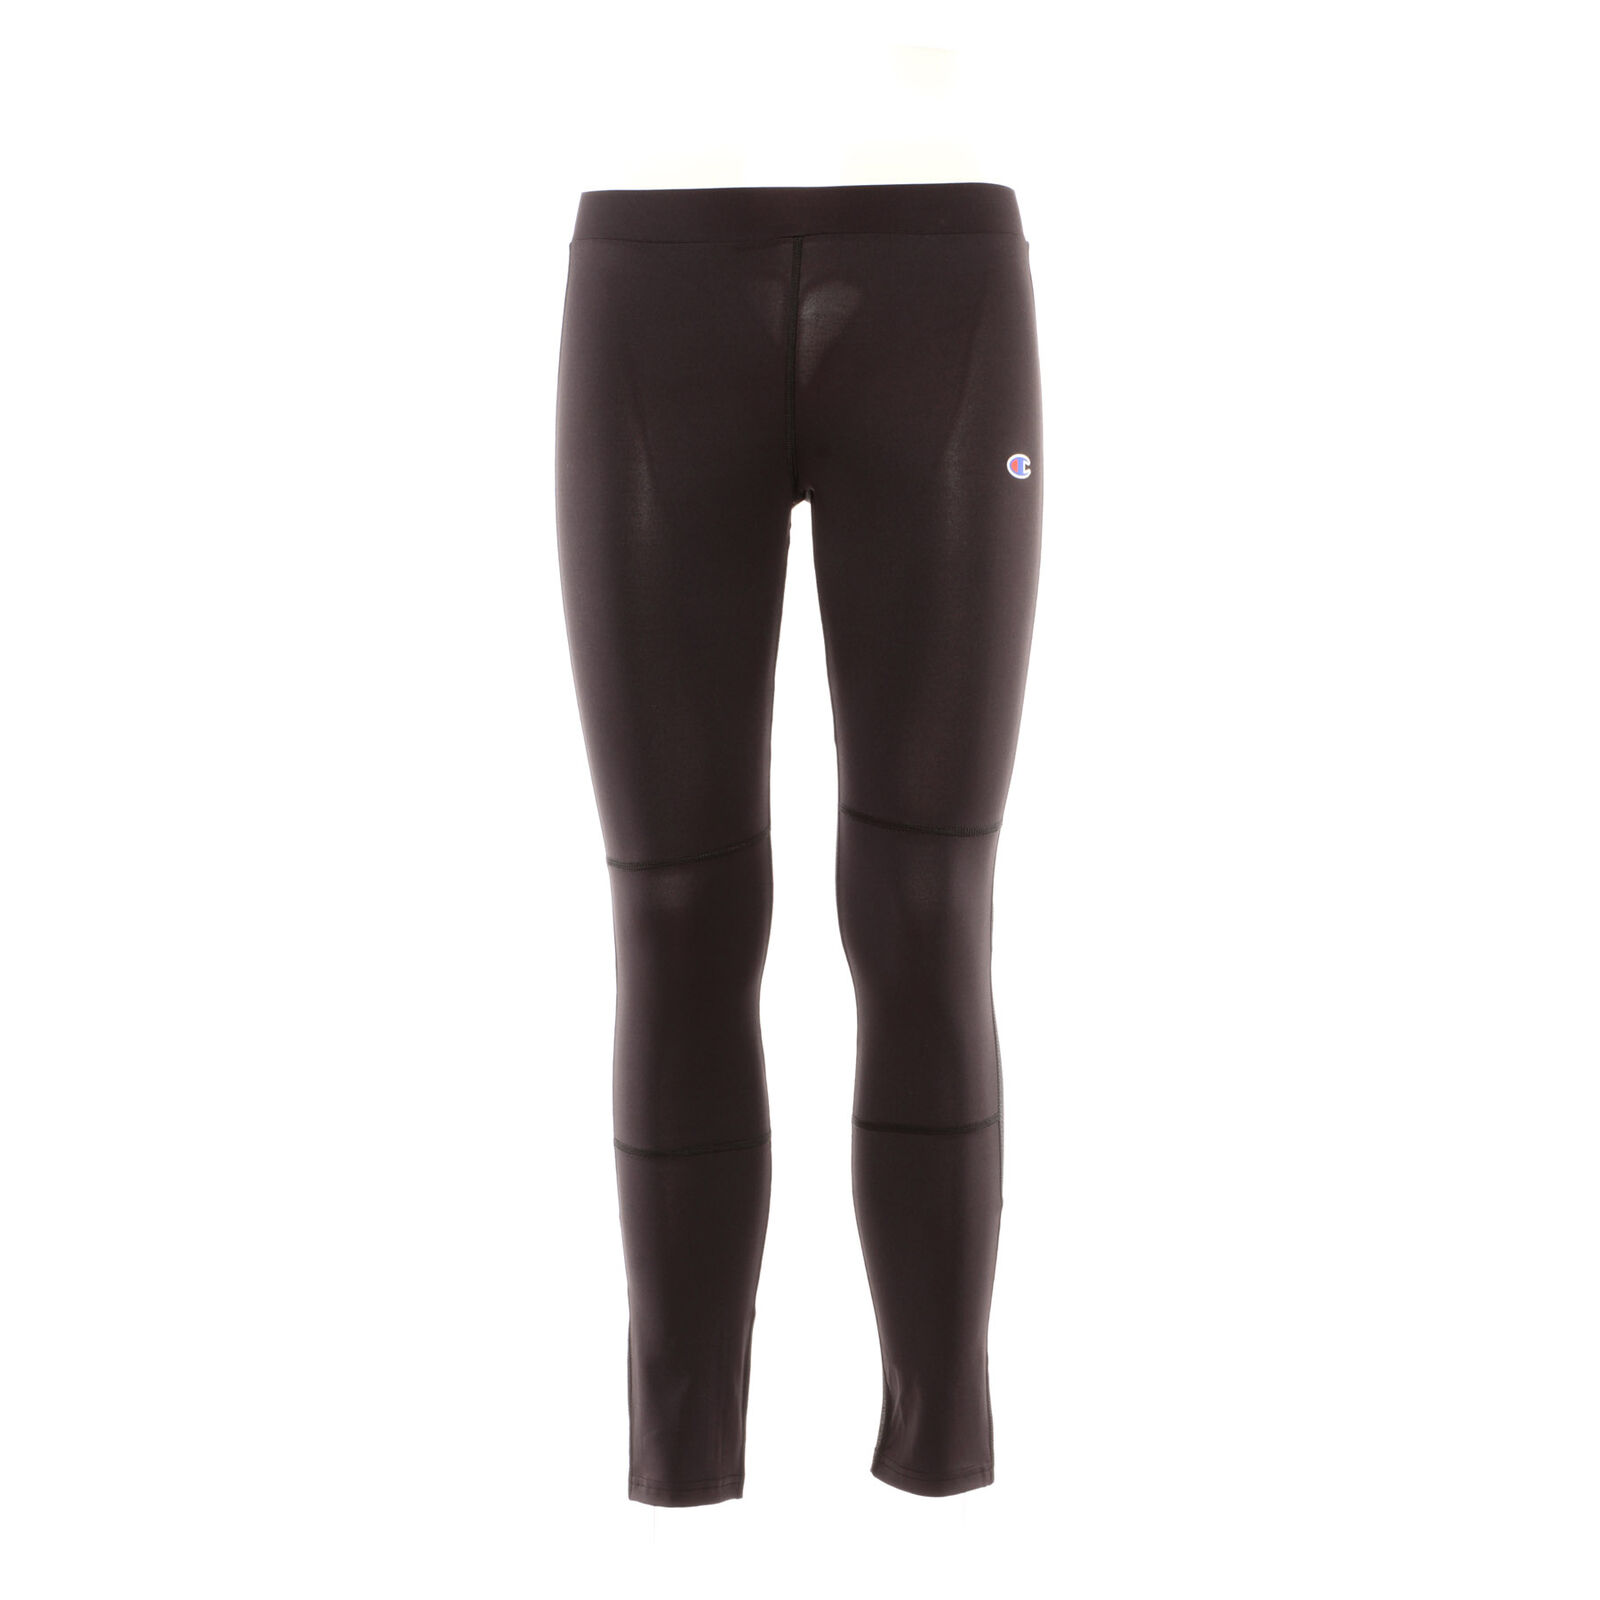 CHAMPION PANTALONI RUNNING men PANTALONI RUNNING men 210781 KK001